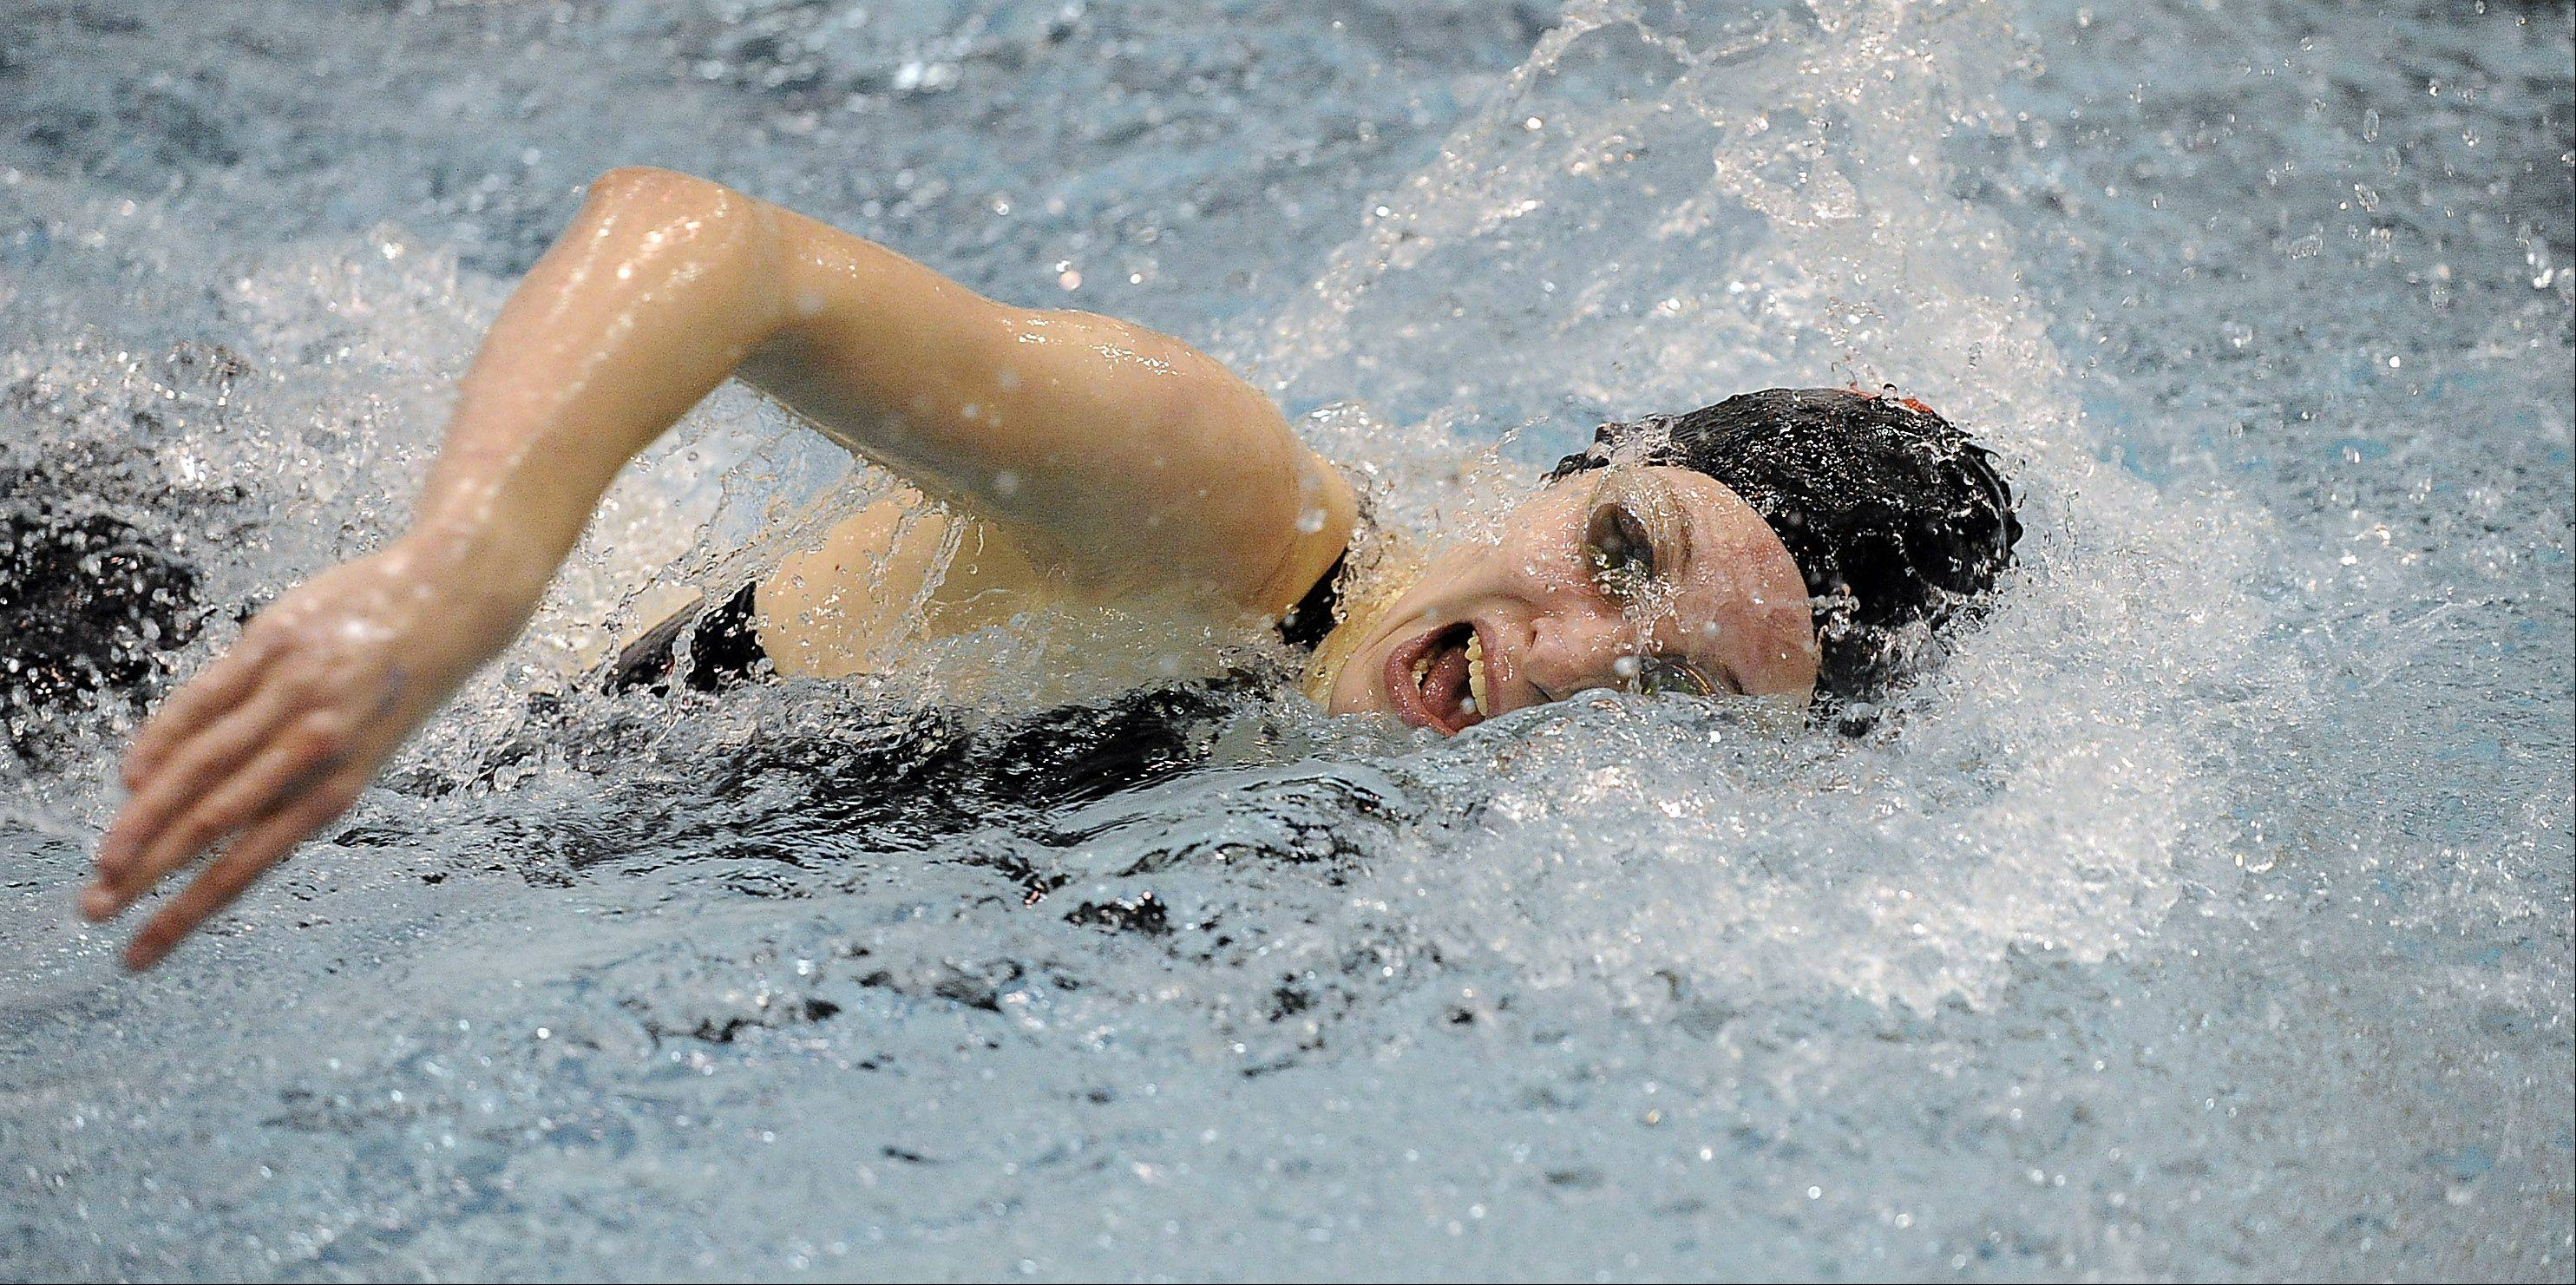 Kristin Anderson of Palatine High School swims in the 100-yd. freestyle at the girls state finals prelims at New Trier High School on Friday.